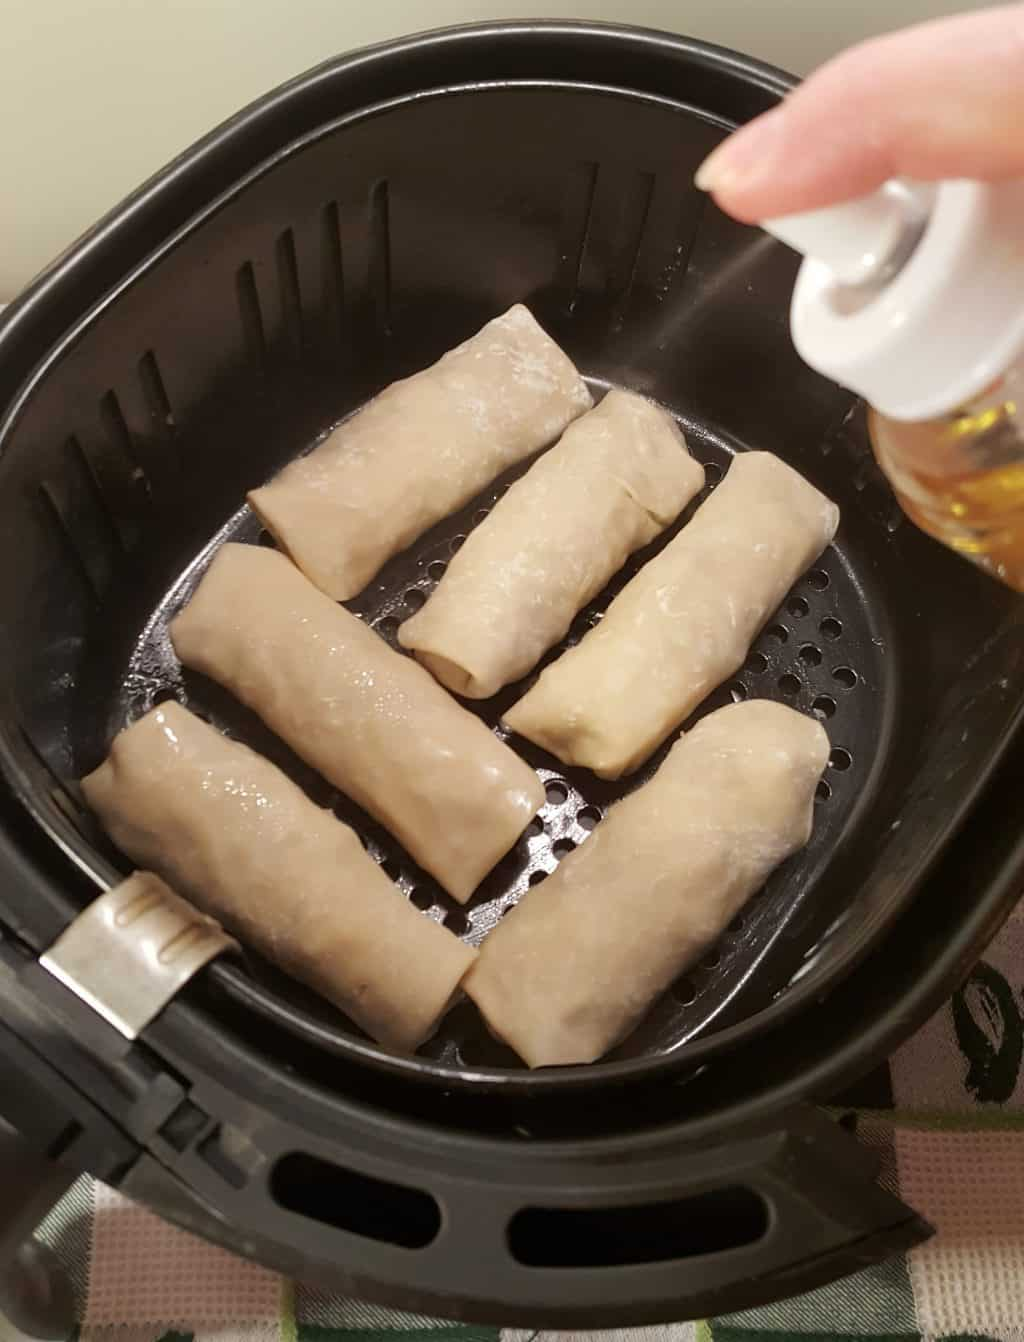 Place Egg Rolls in Greased Air Fryer